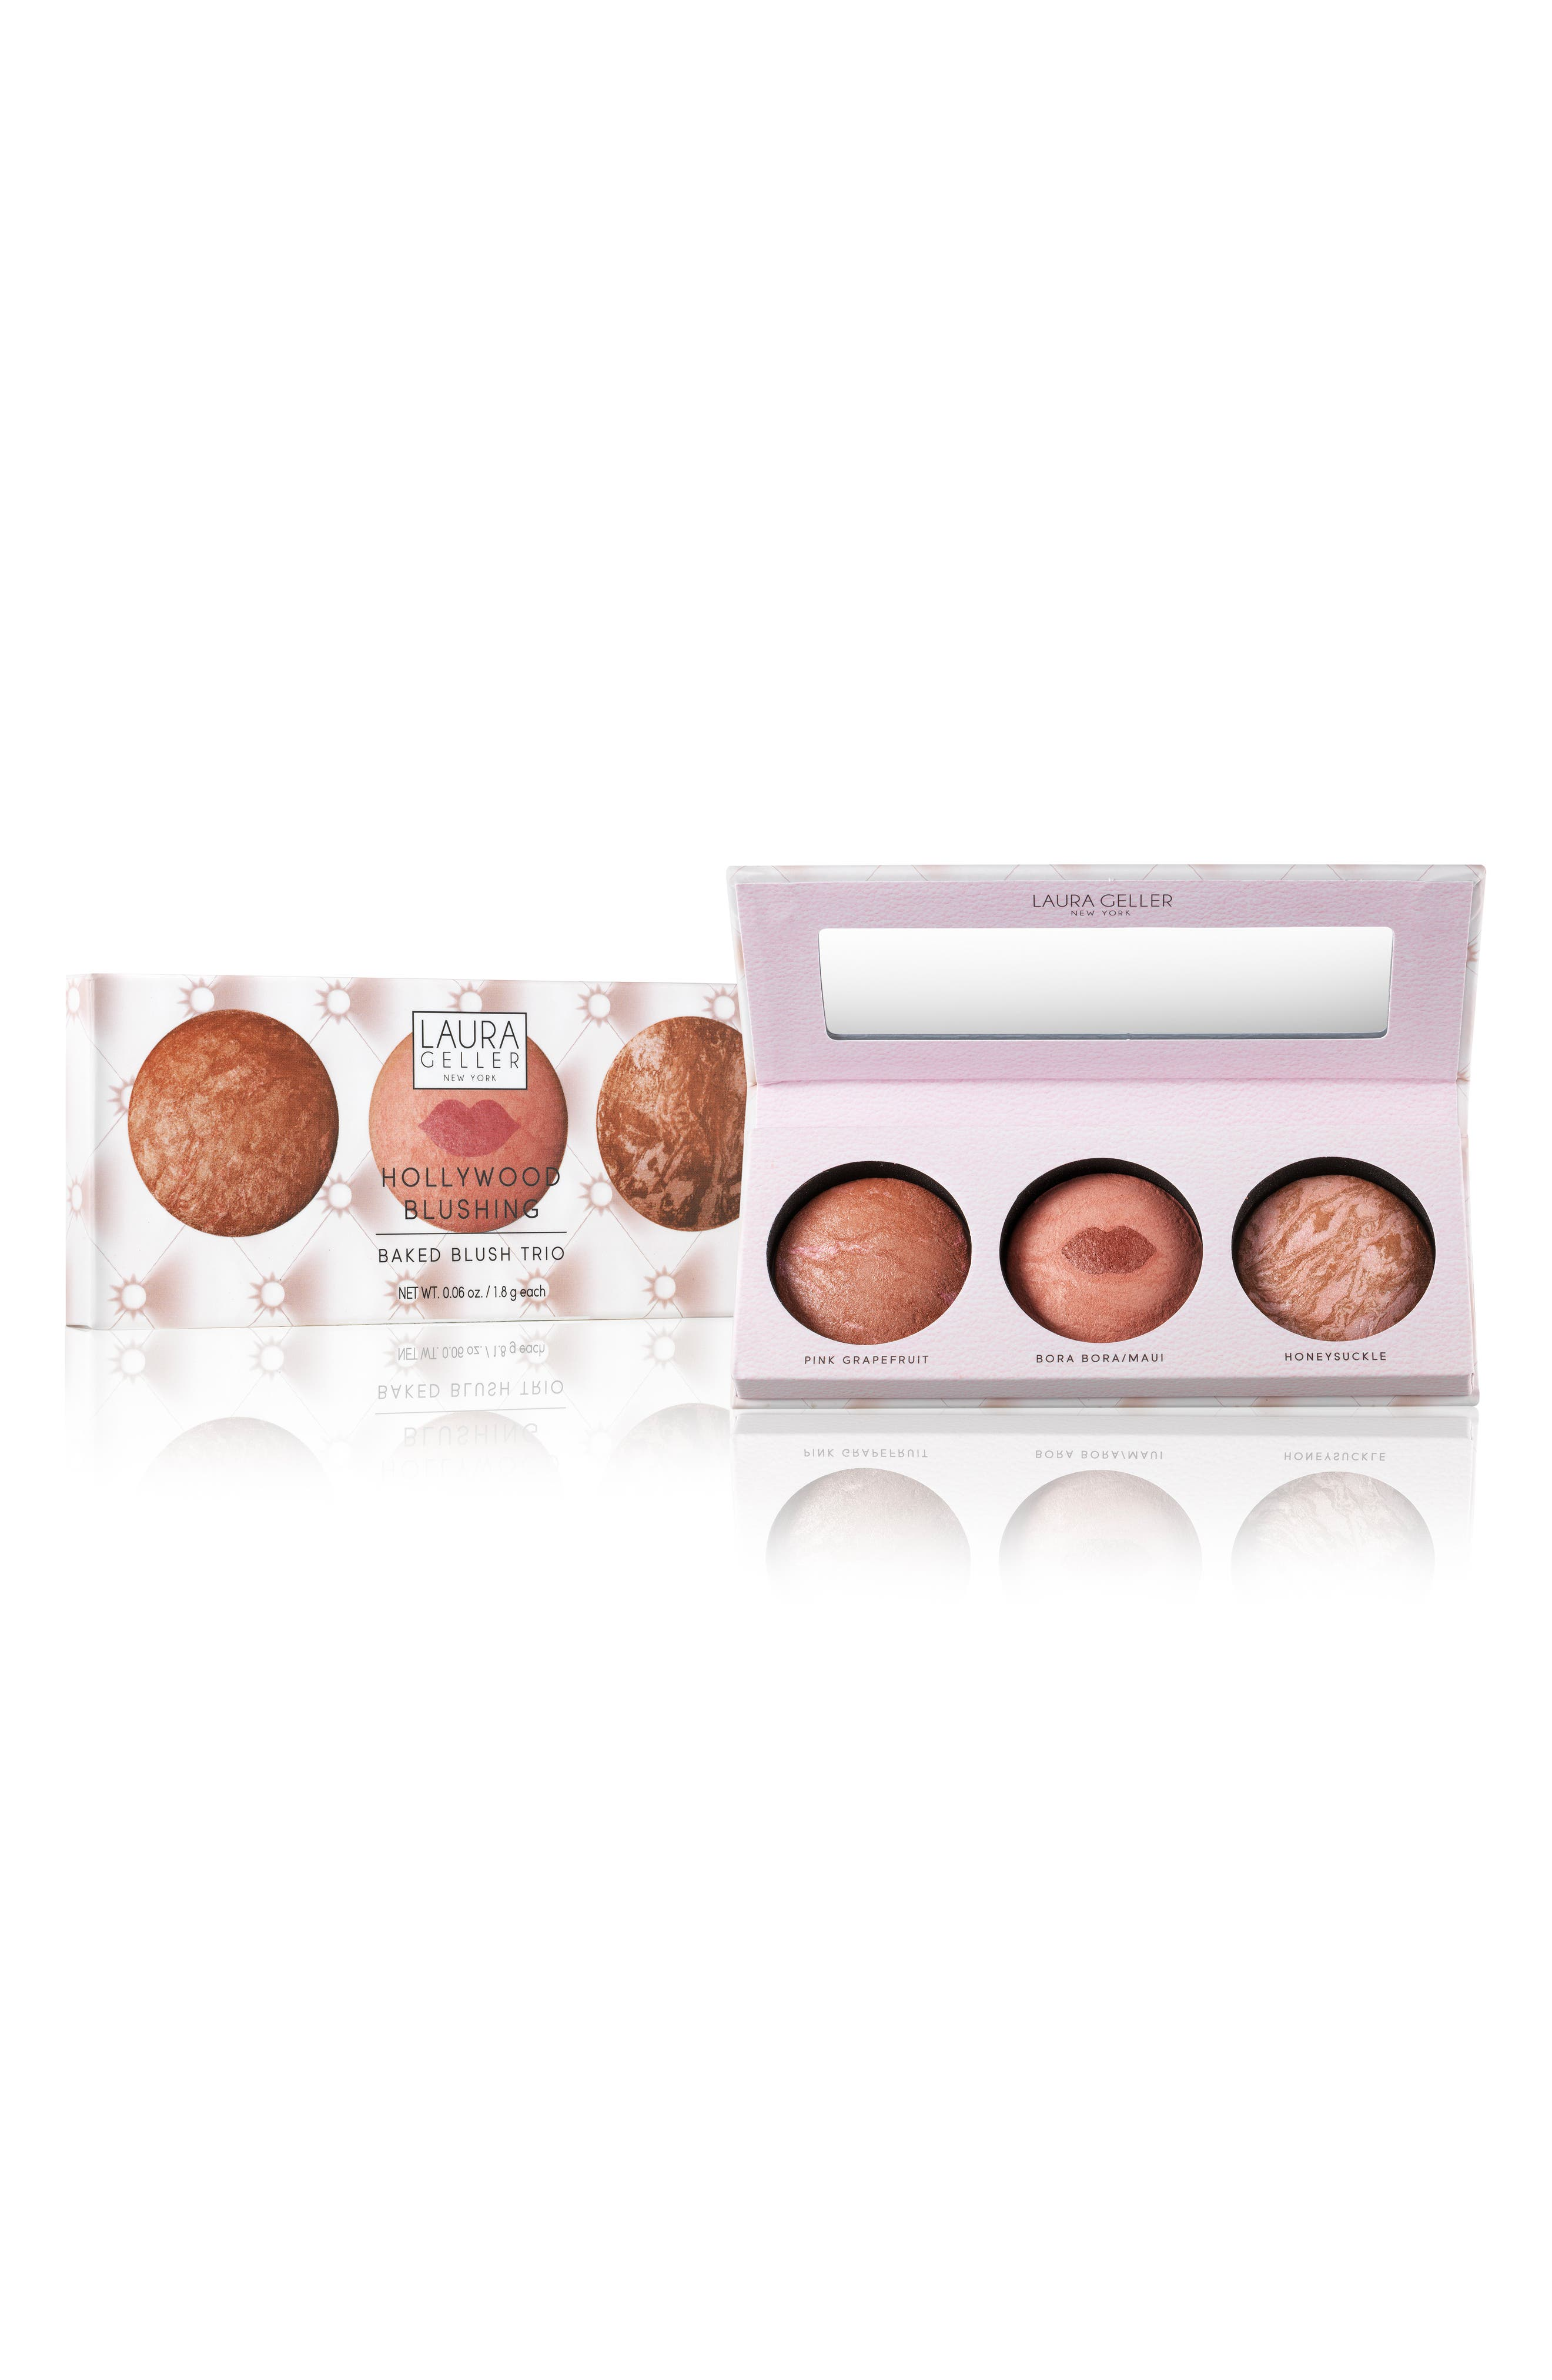 Laura Geller Beauty Hollywood Baked Blush Trio ($72 Value)